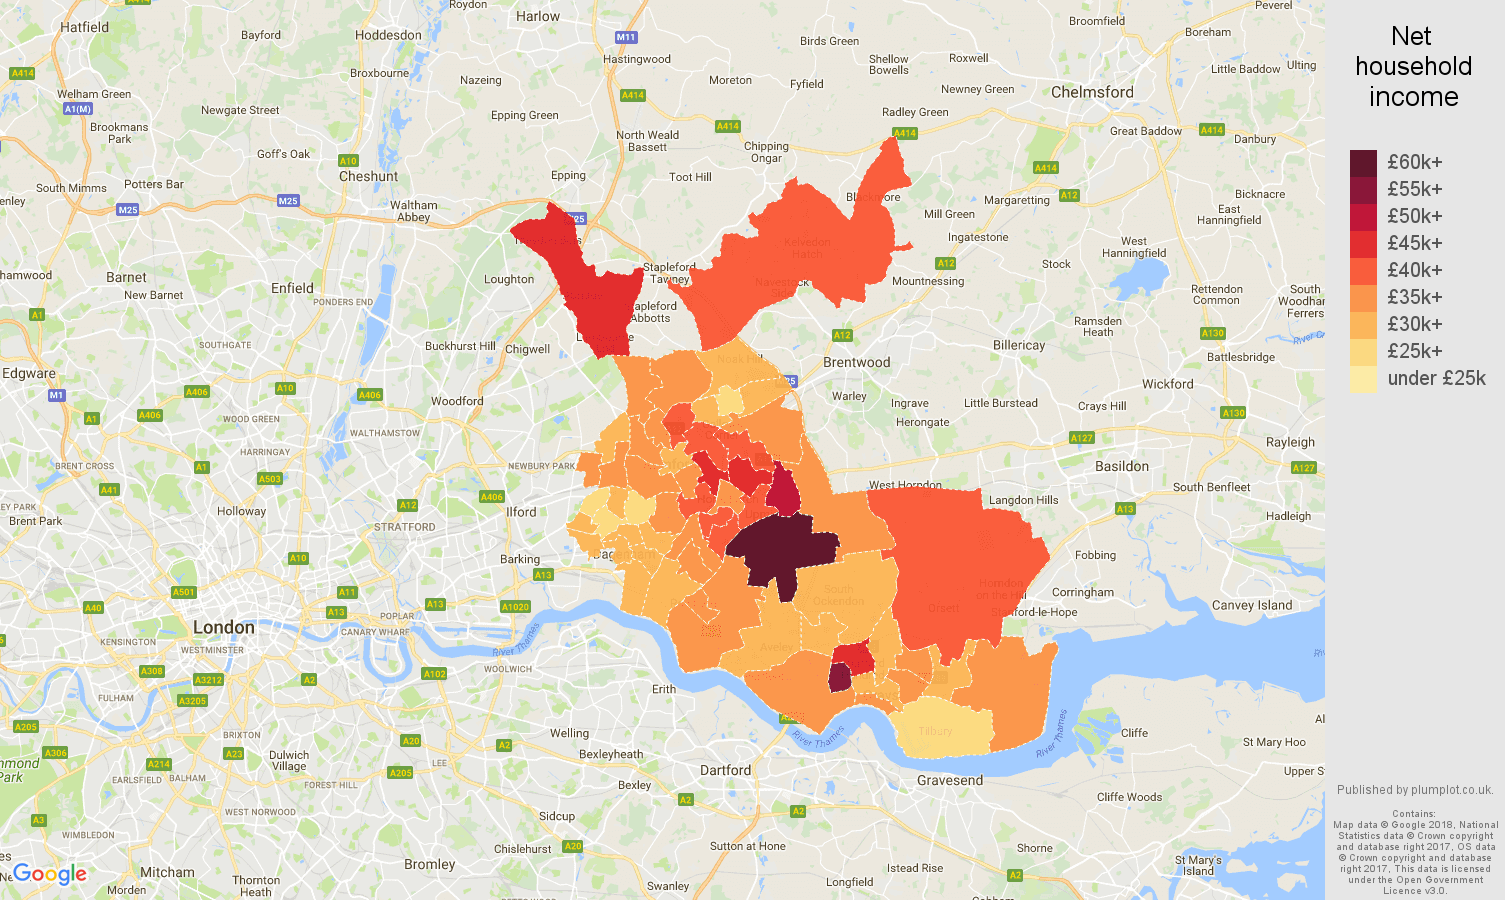 Romford net household income map